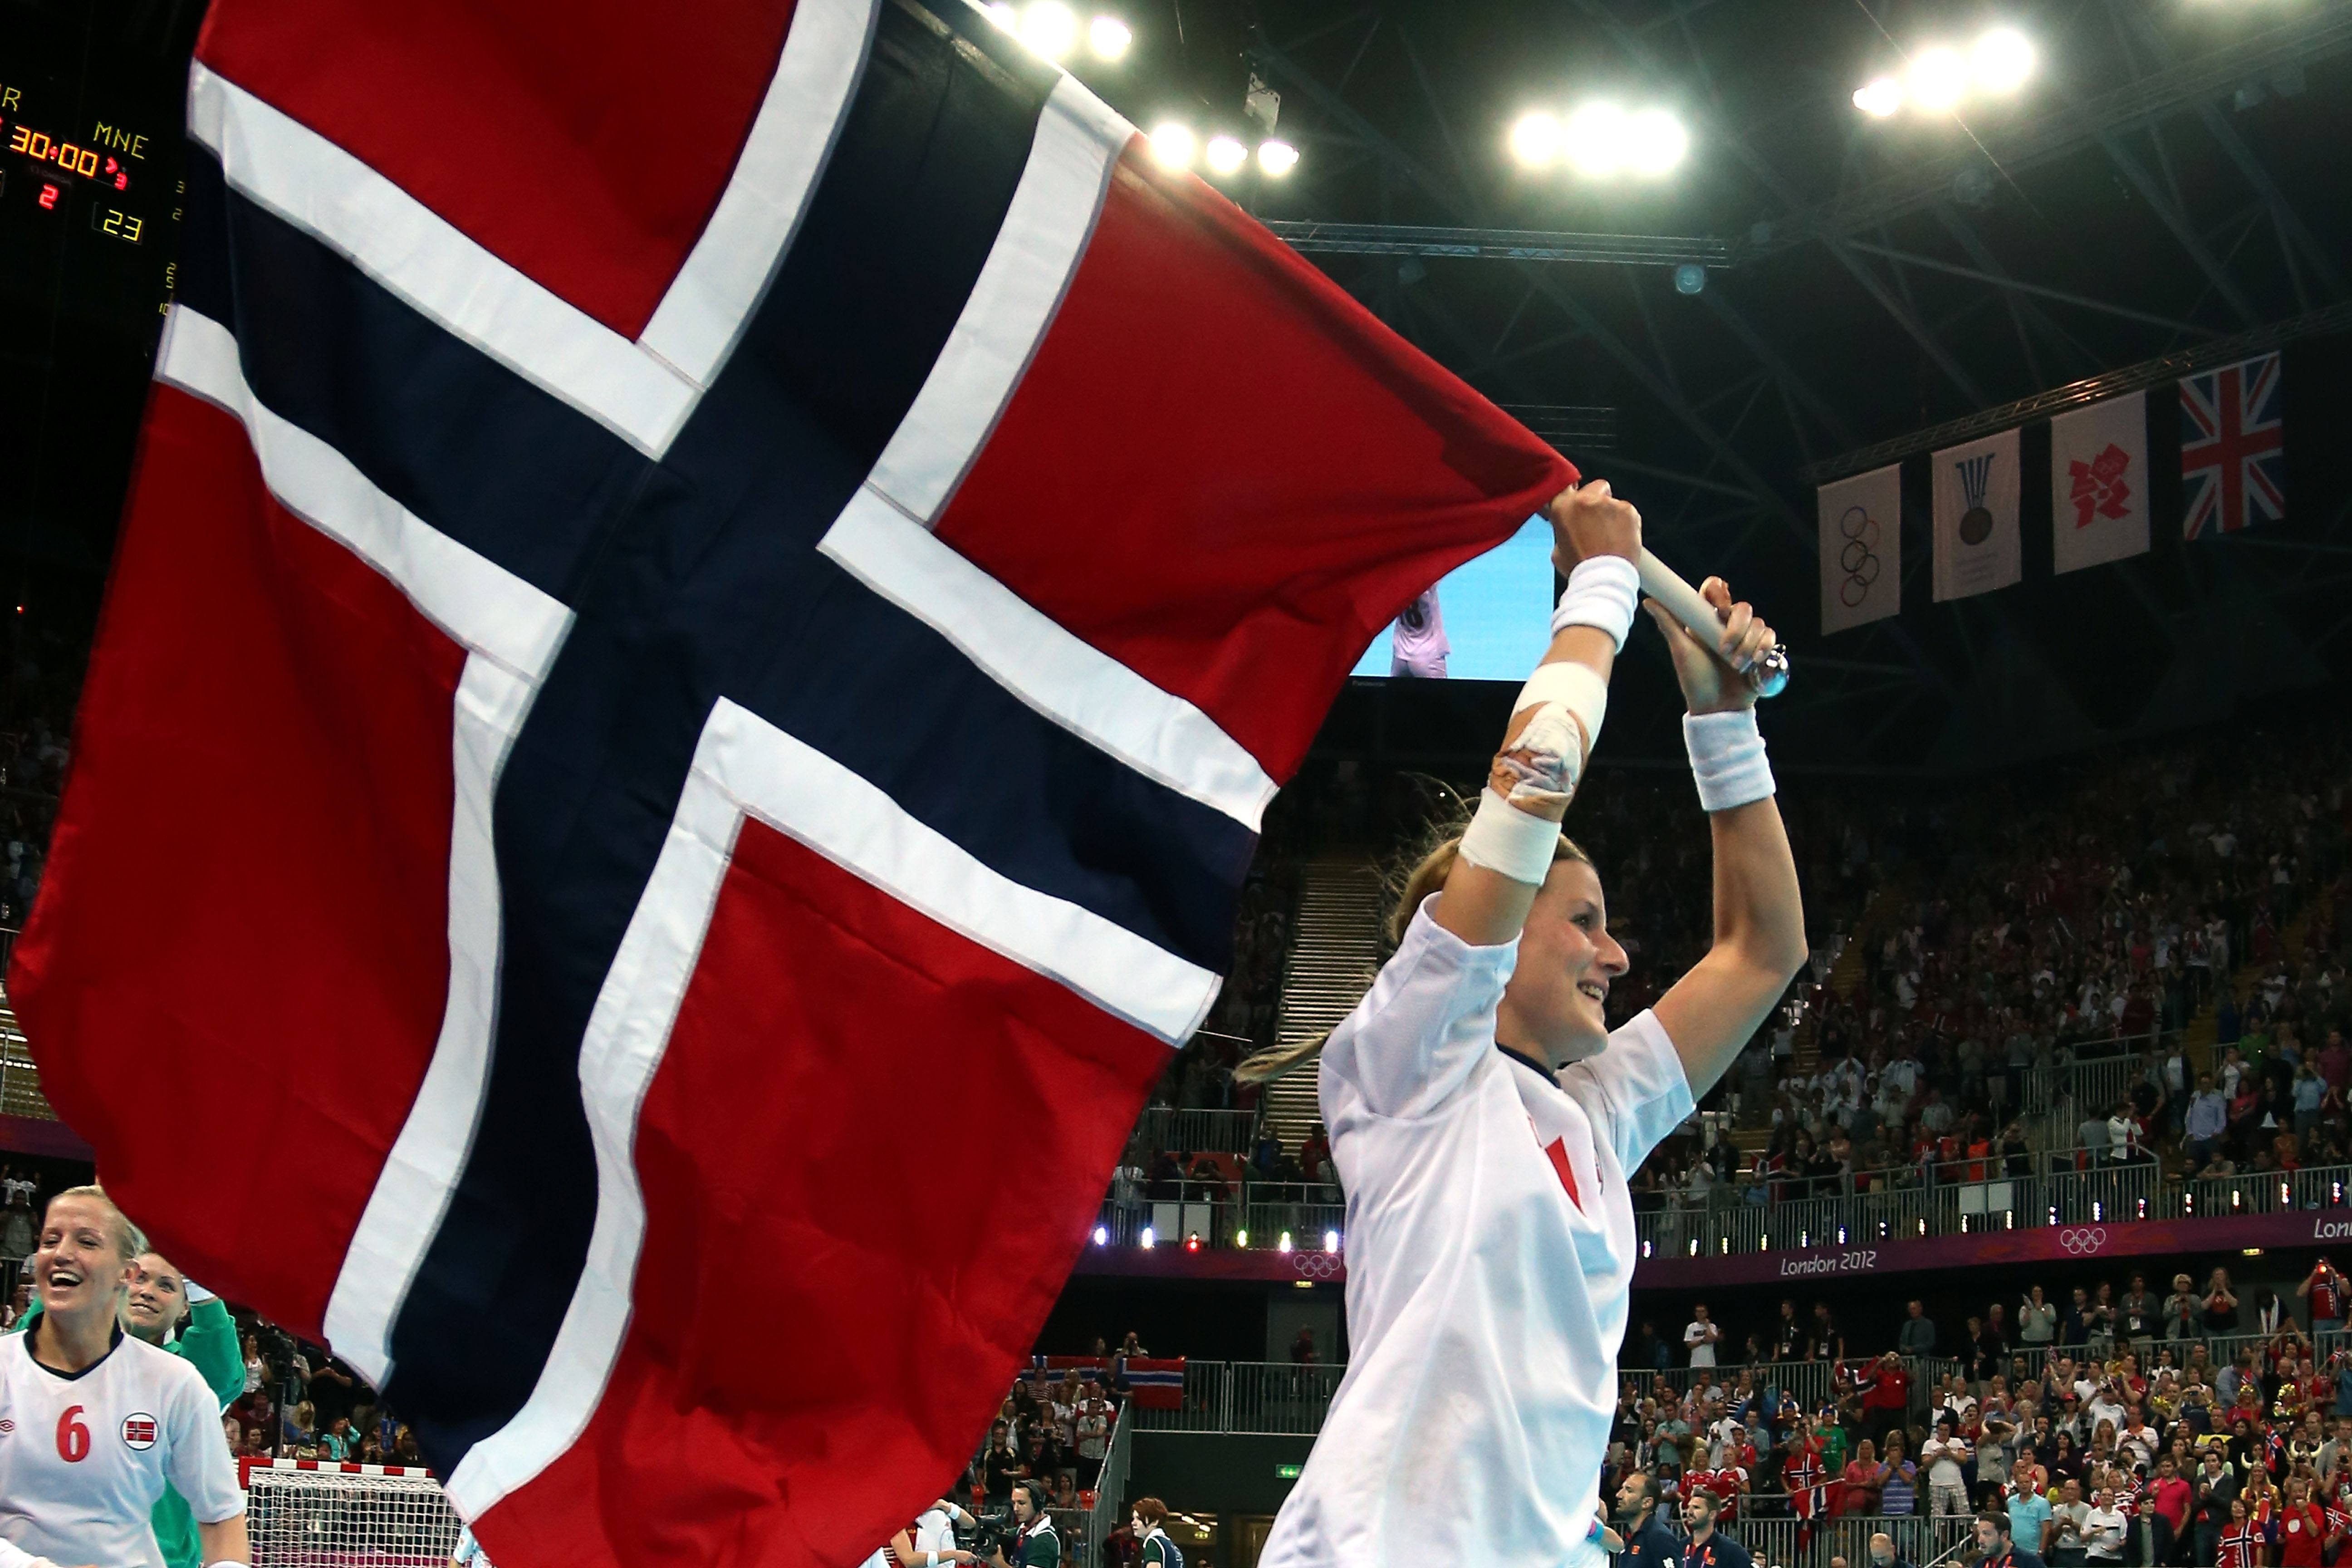 A Norwegian Olympian celebrates with her country's flag